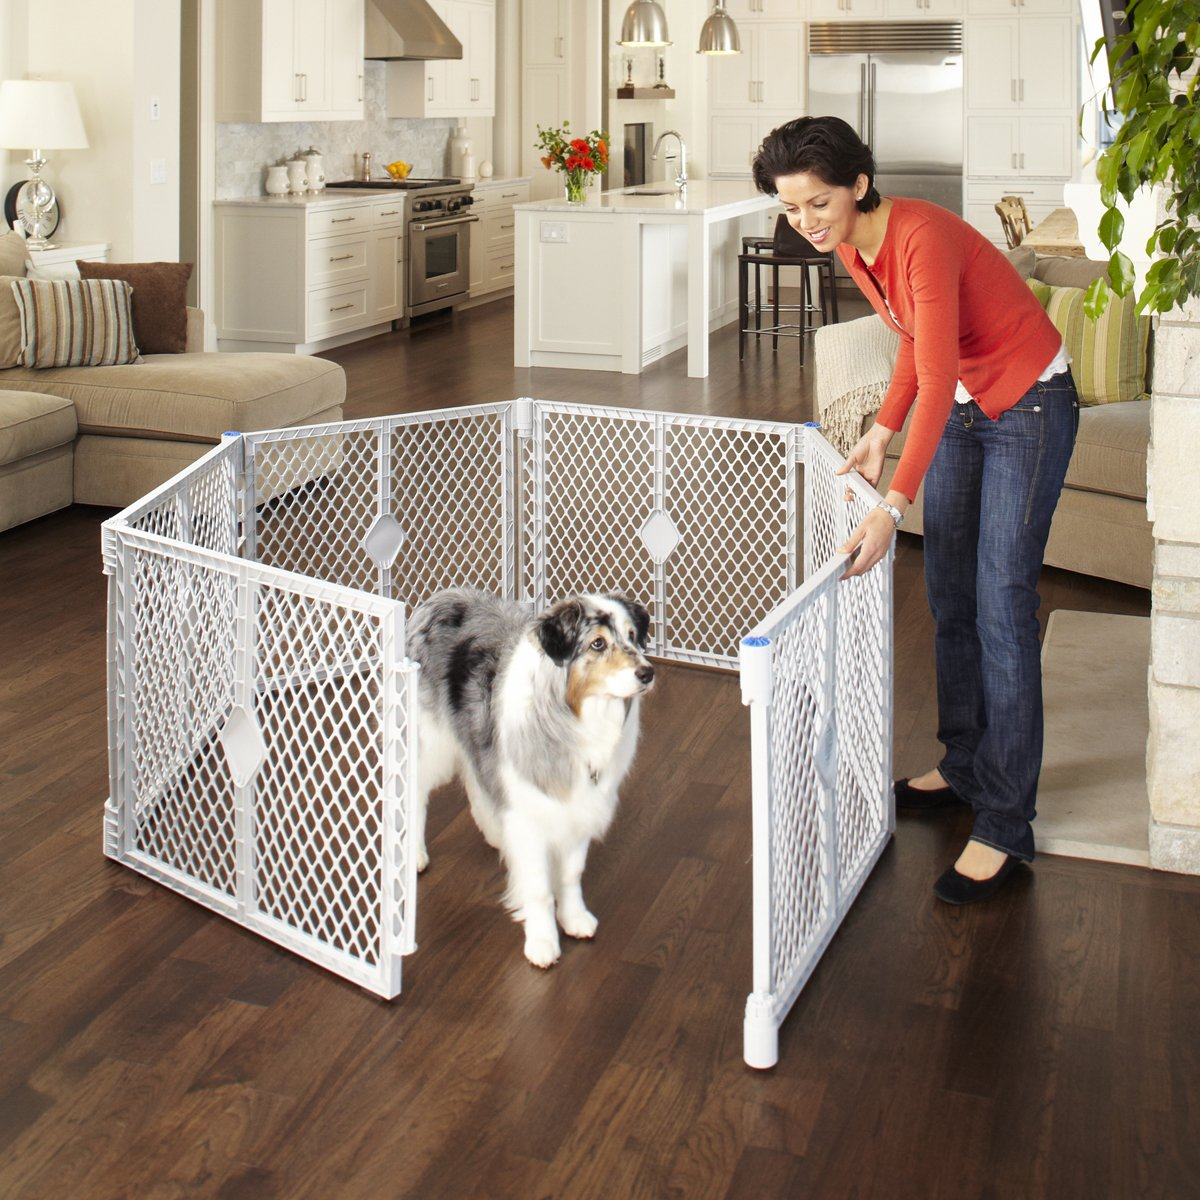 North States SUPERYARD XT Baby/Pet Gate & Play Yard by North States (Image #7)